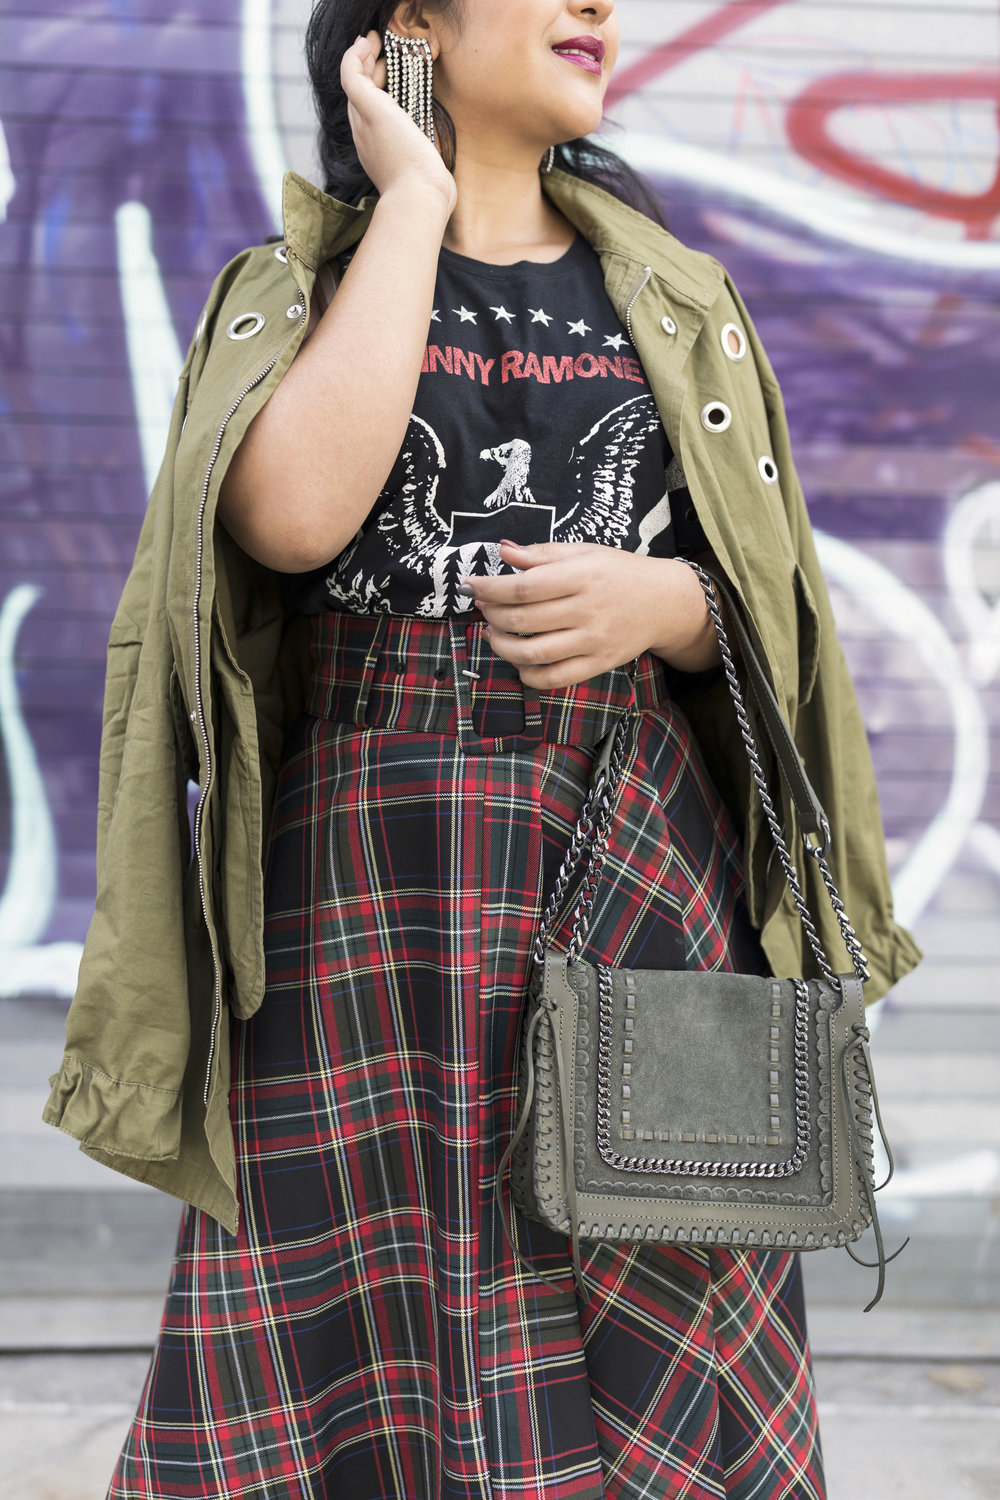 Krity S x Fall Trends x Plaid with a Punk Twist13.jpg